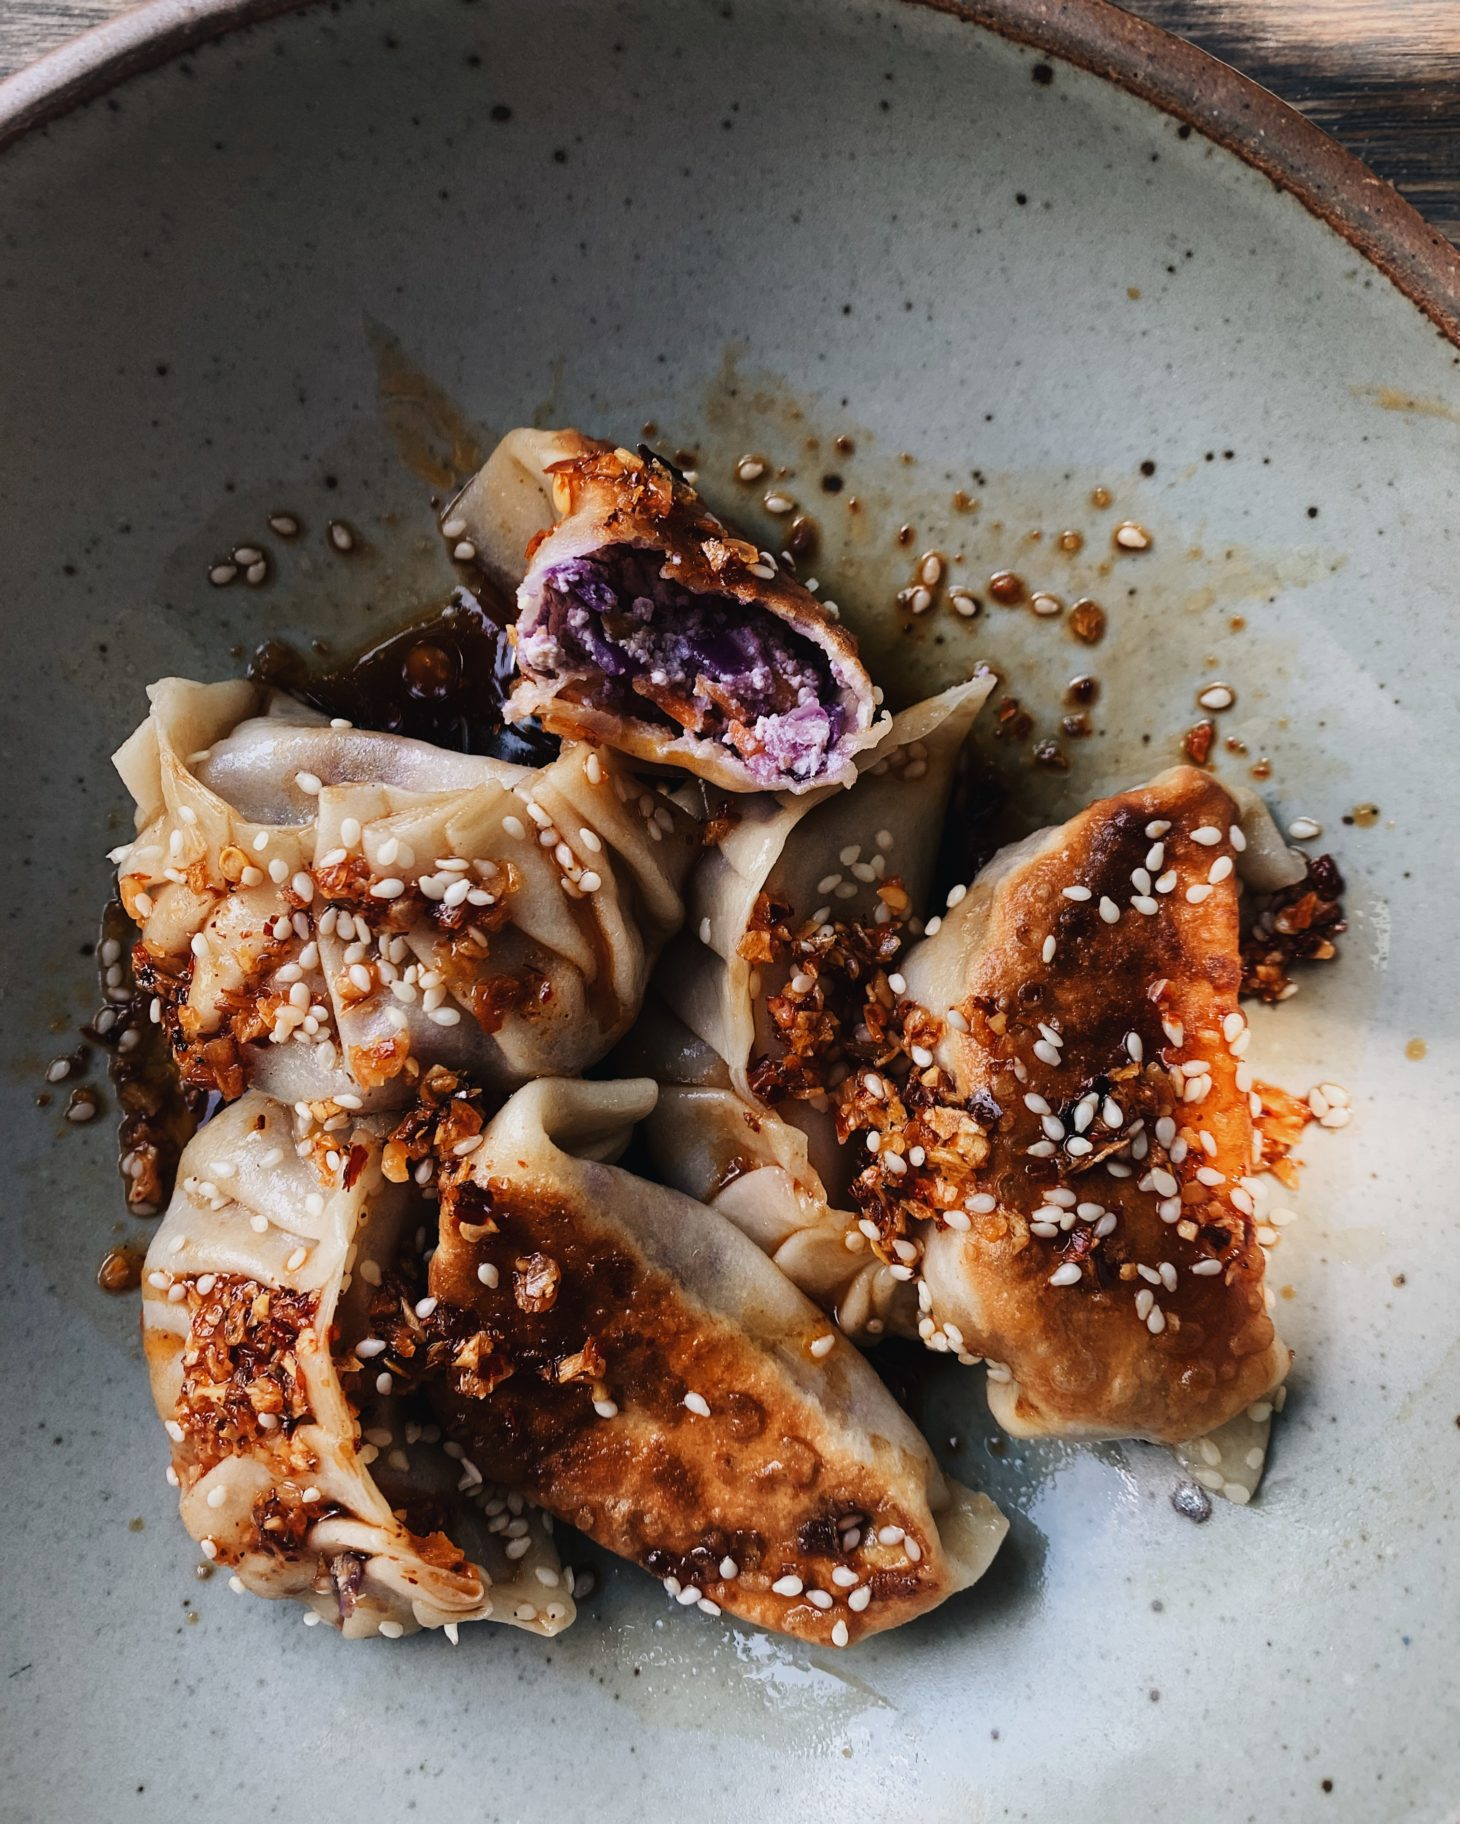 Close-up photo of potstickers with one open to reveal purple filling.